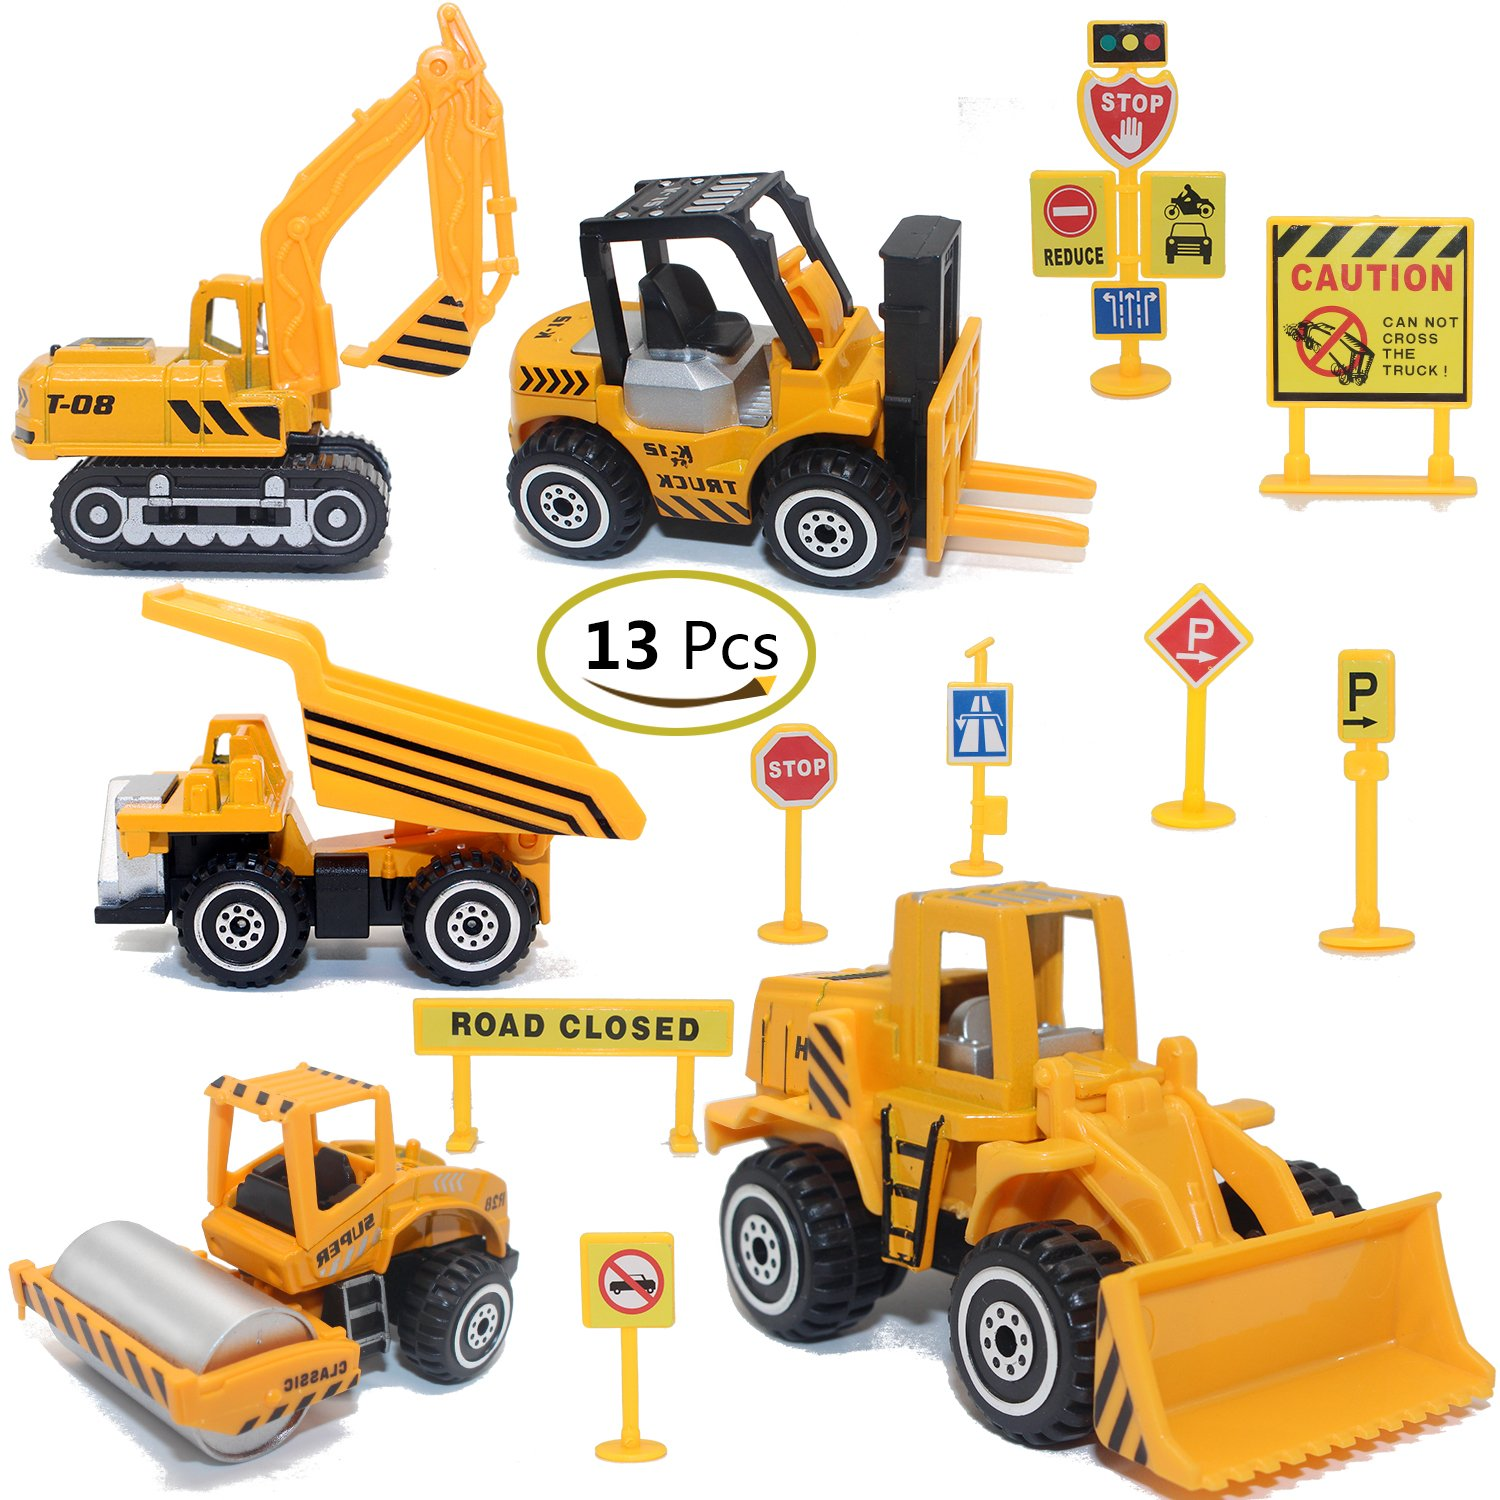 Clipart toys construction toy. Zohumi sets pieces mini